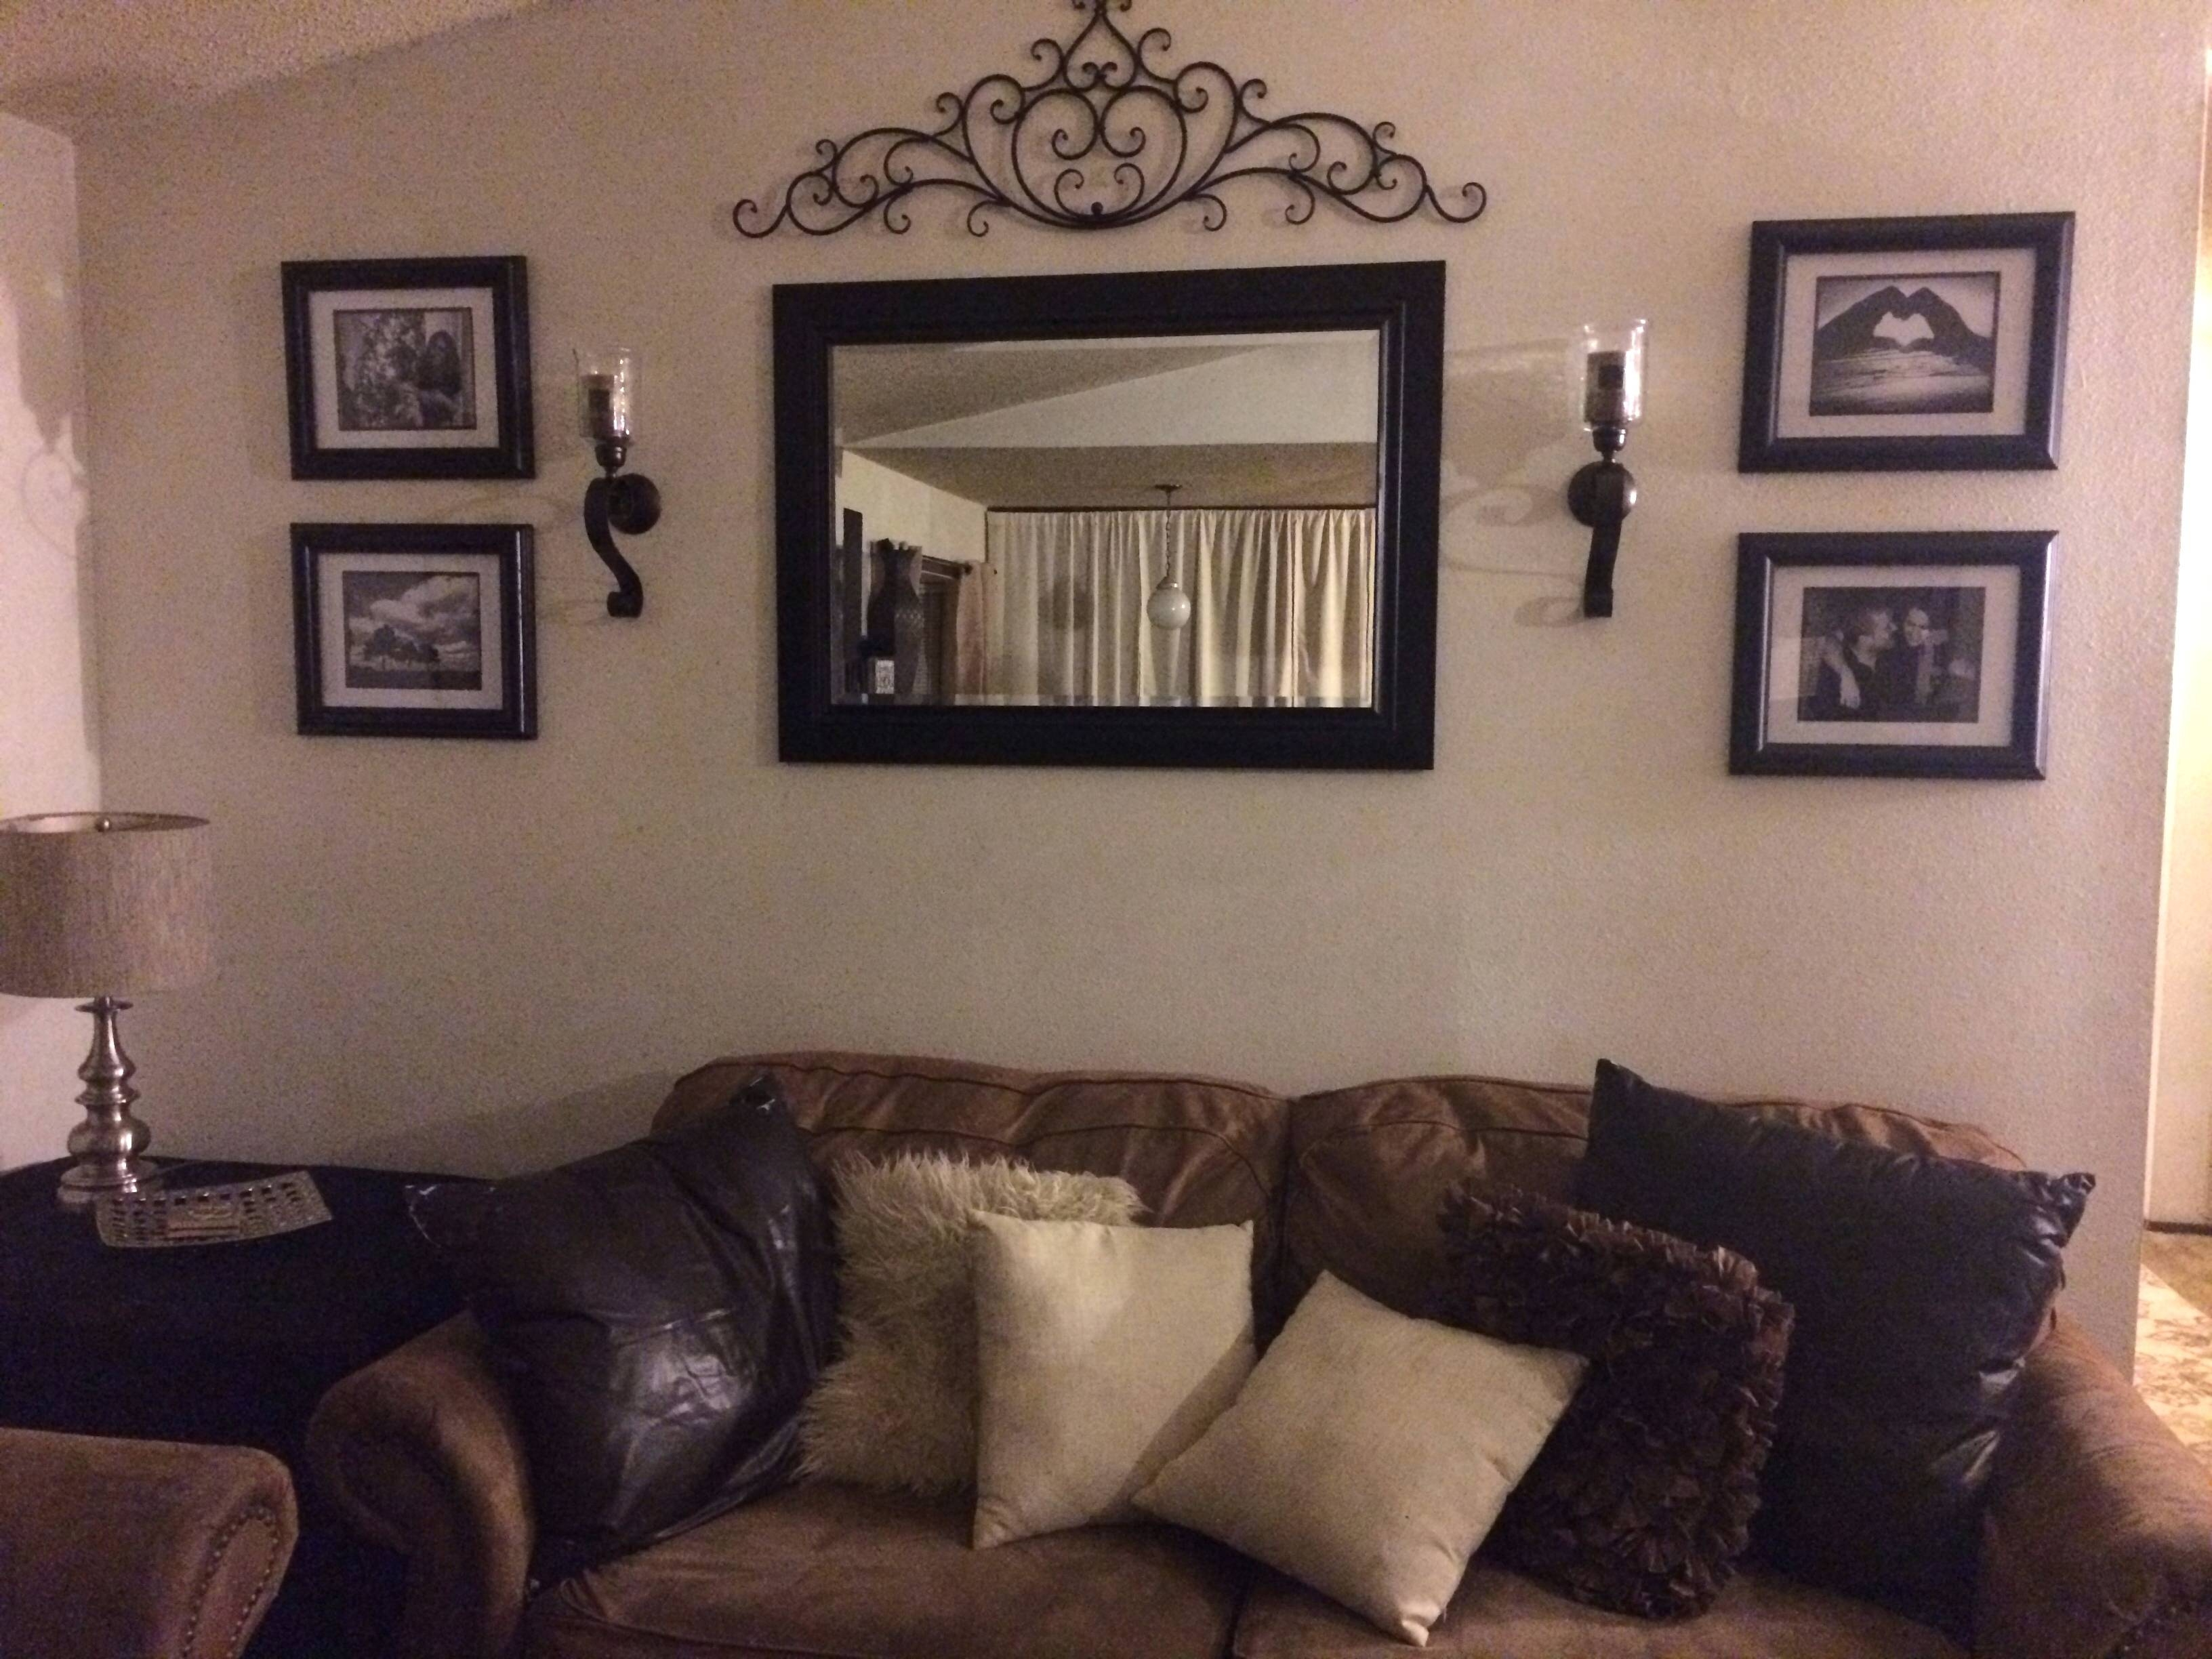 Wall Mirrors ~ Horizontal Decorative Wall Mirrors Wall Art Within Current Mirrored Frame Wall Art (View 11 of 20)